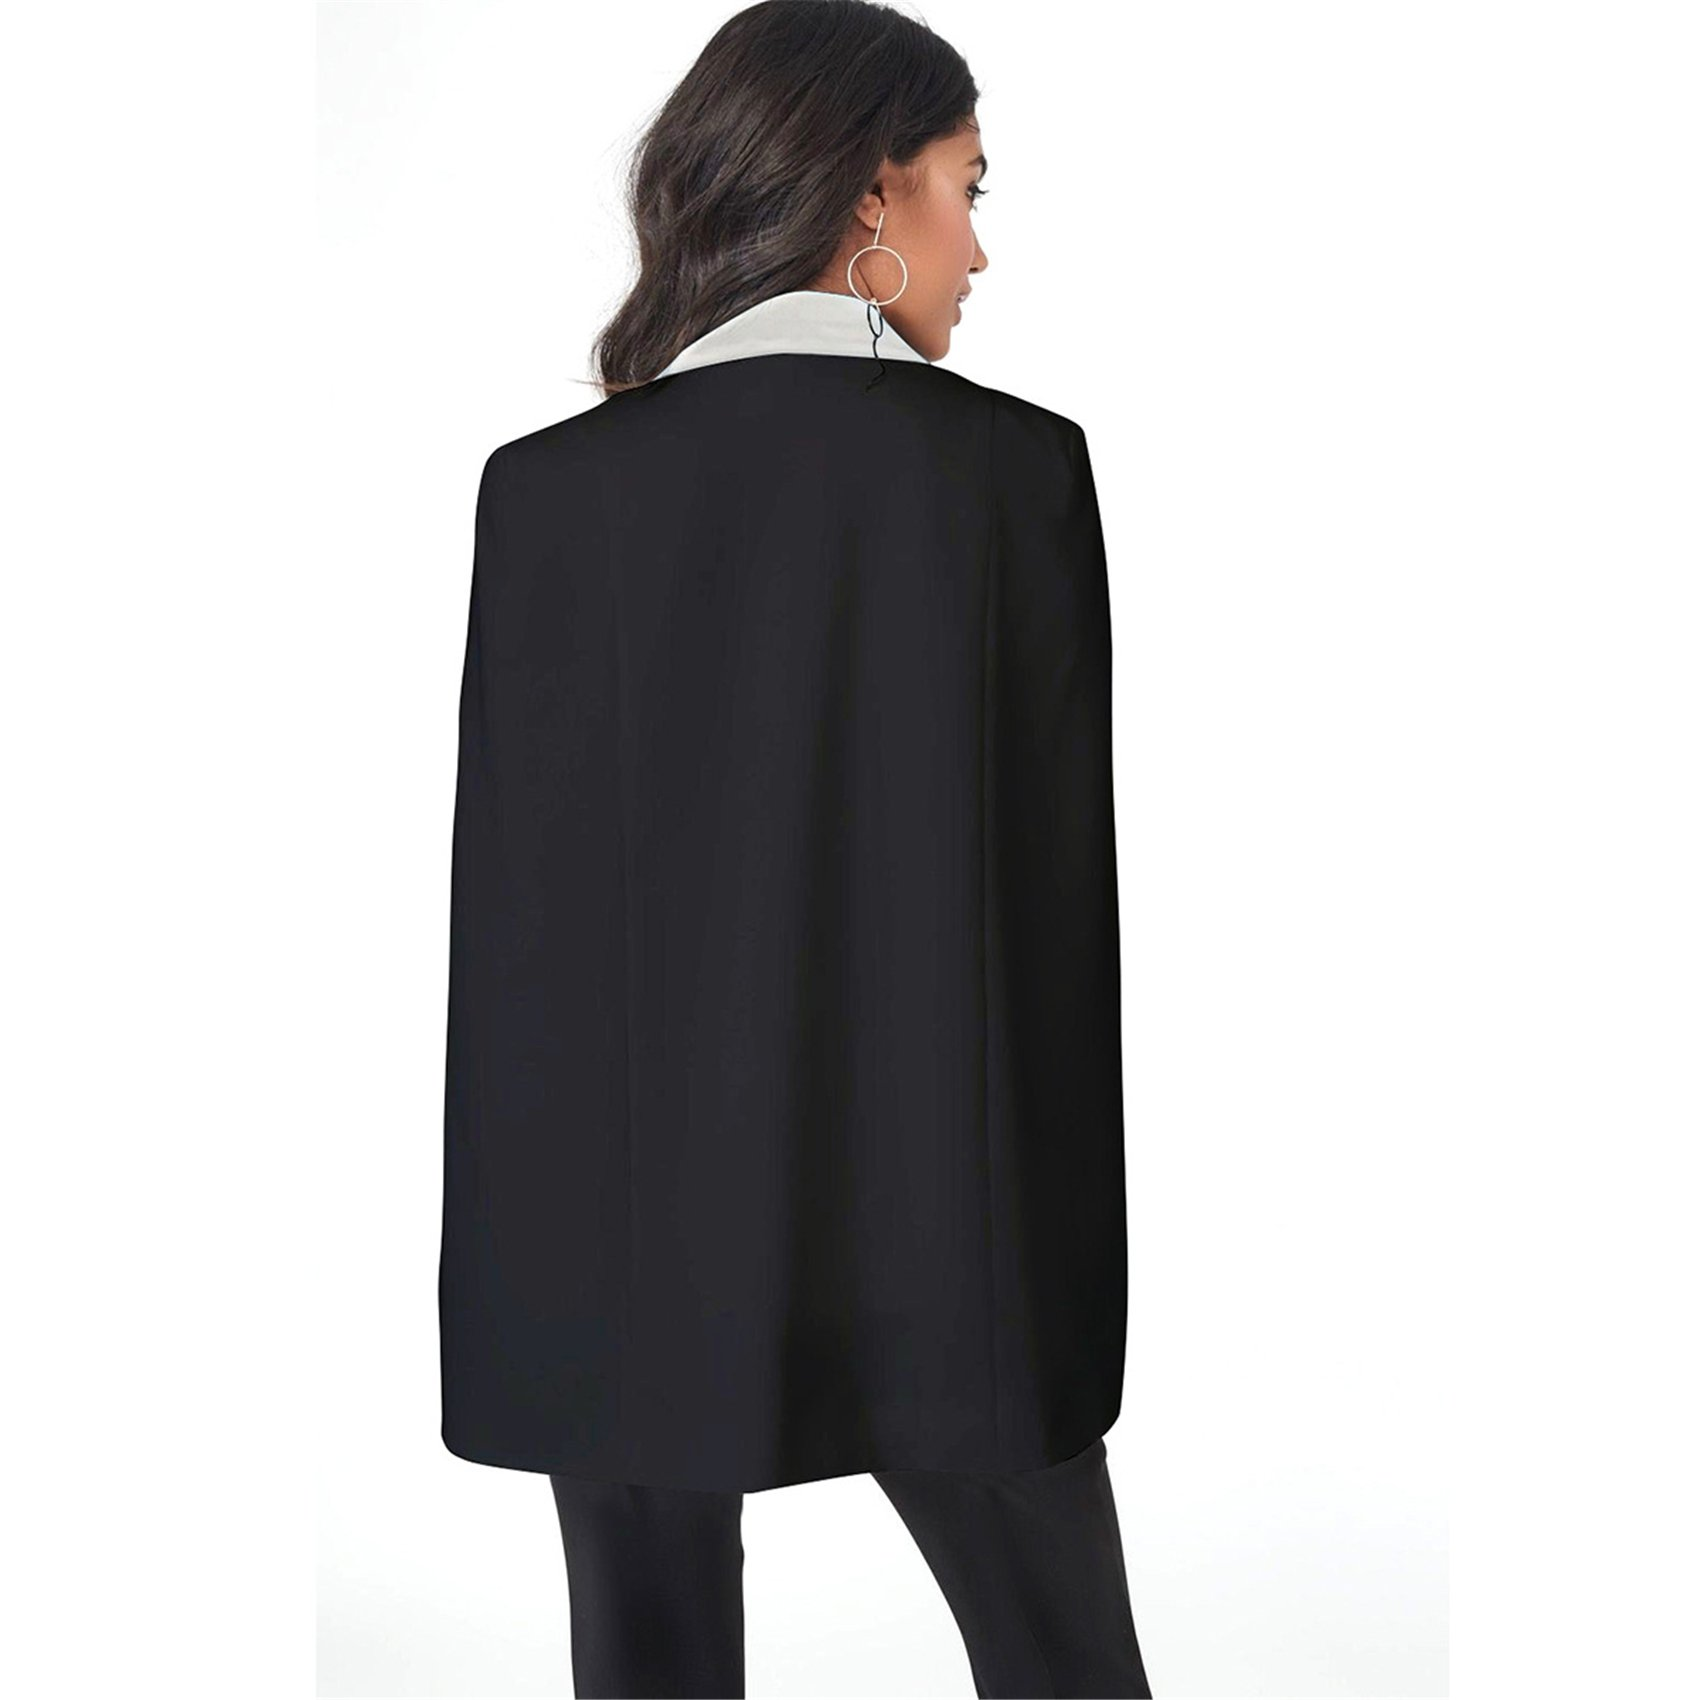 Cloak Poncho Cape Style Split Slit Long Sleeve Deep V Neck One Button Pocket Colorblock Blazer Jacket Top Black L by Arctic Cubic (Image #2)